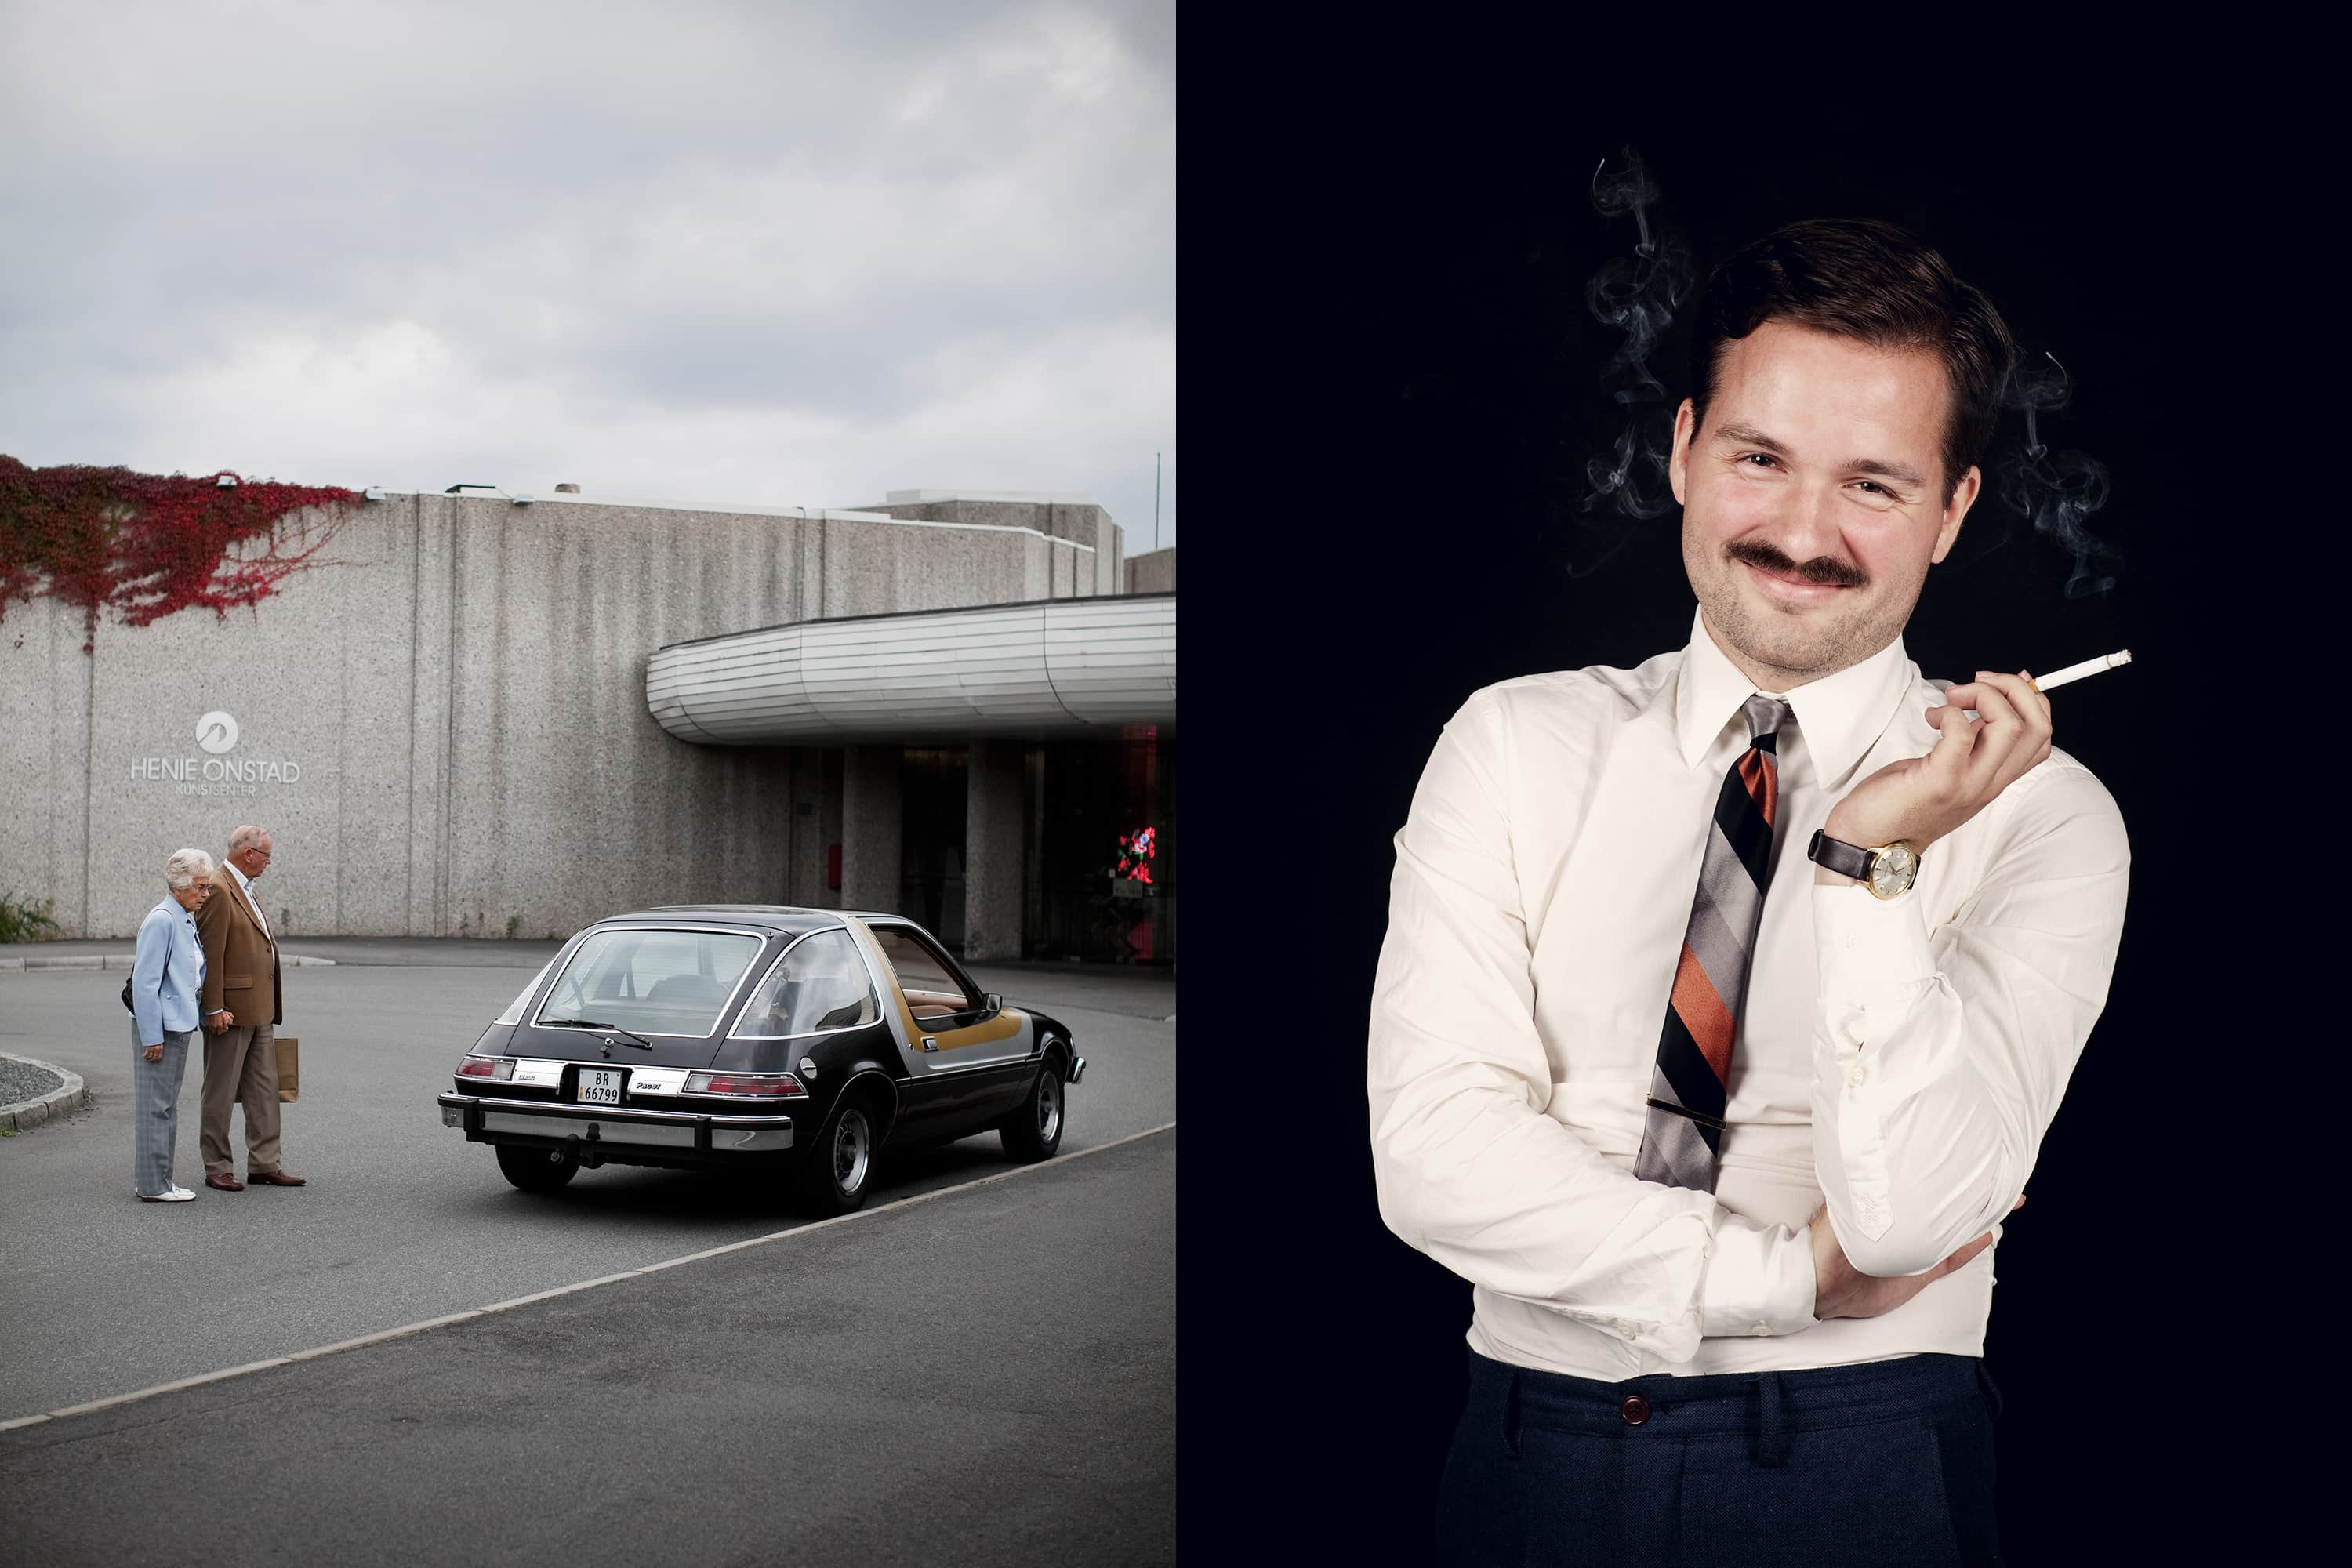 Kimm Saatvedt – CARS and culture